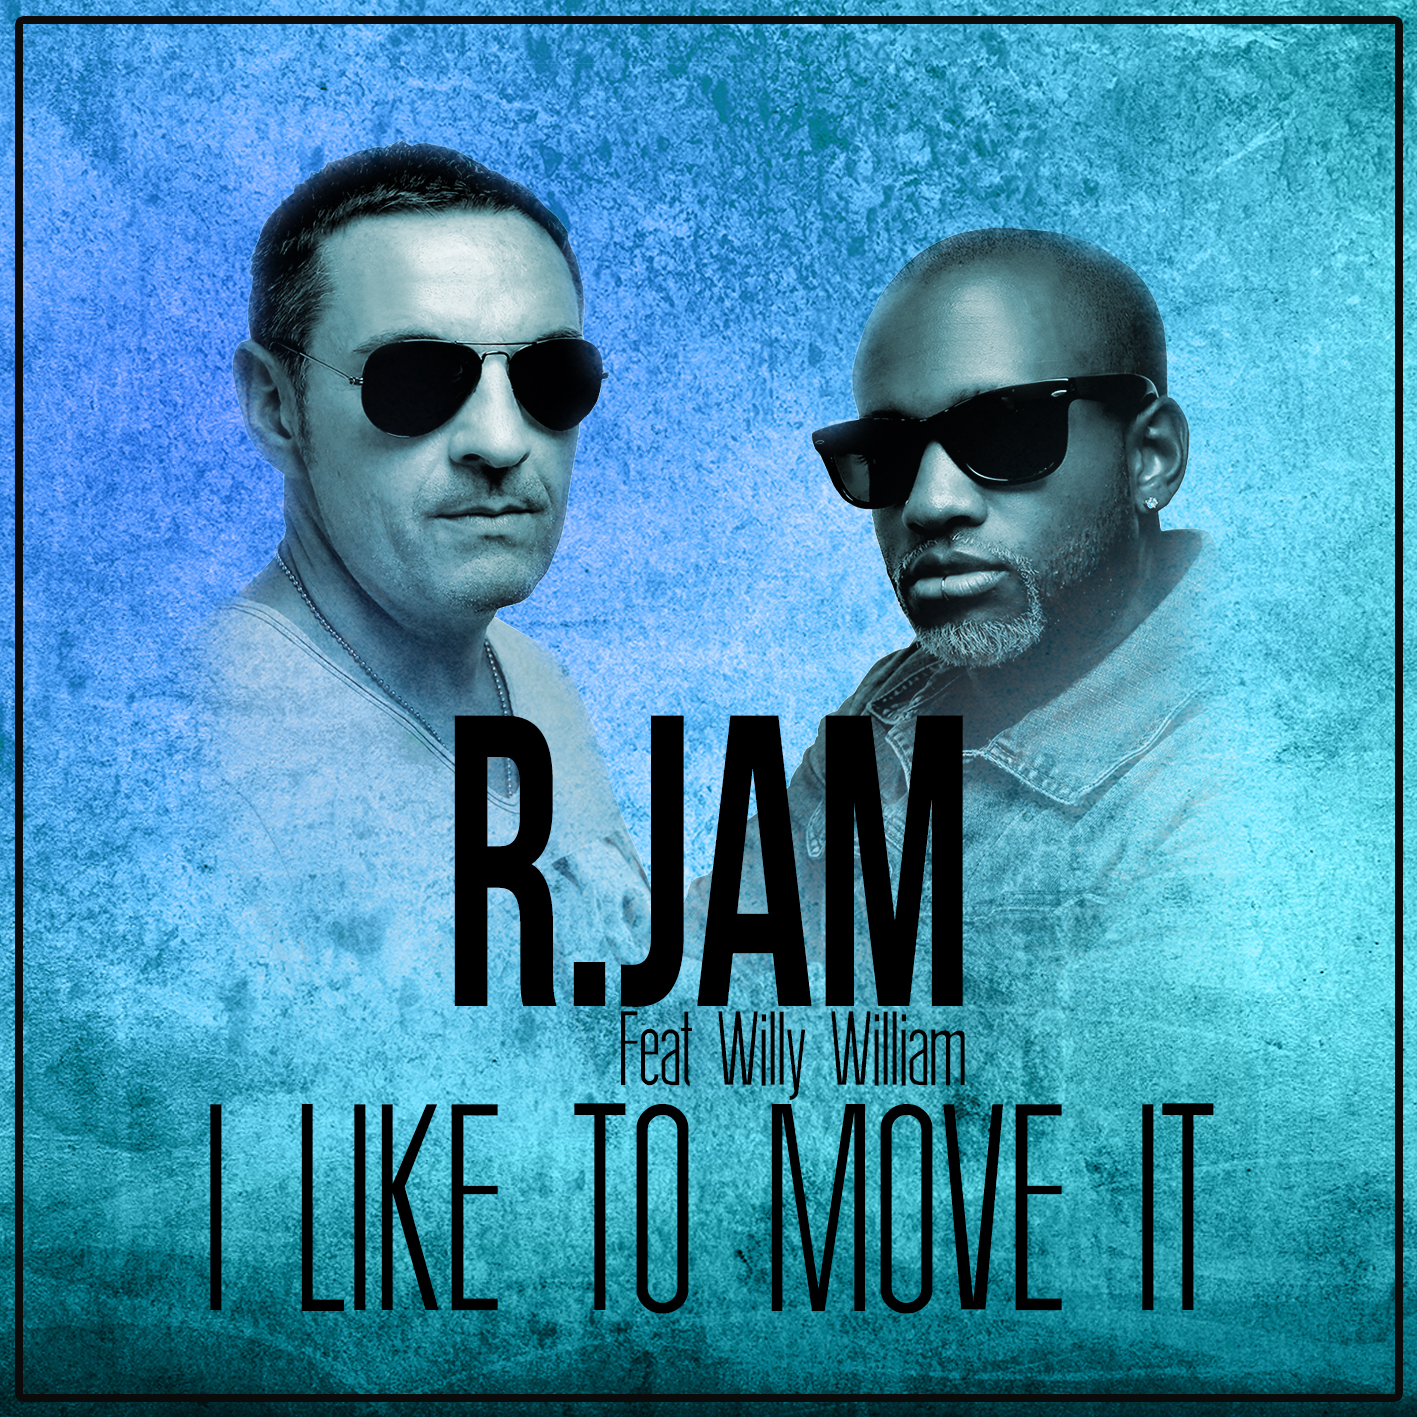 R.JAM Feat WILLY WILIAM I like to move it Cover commercial